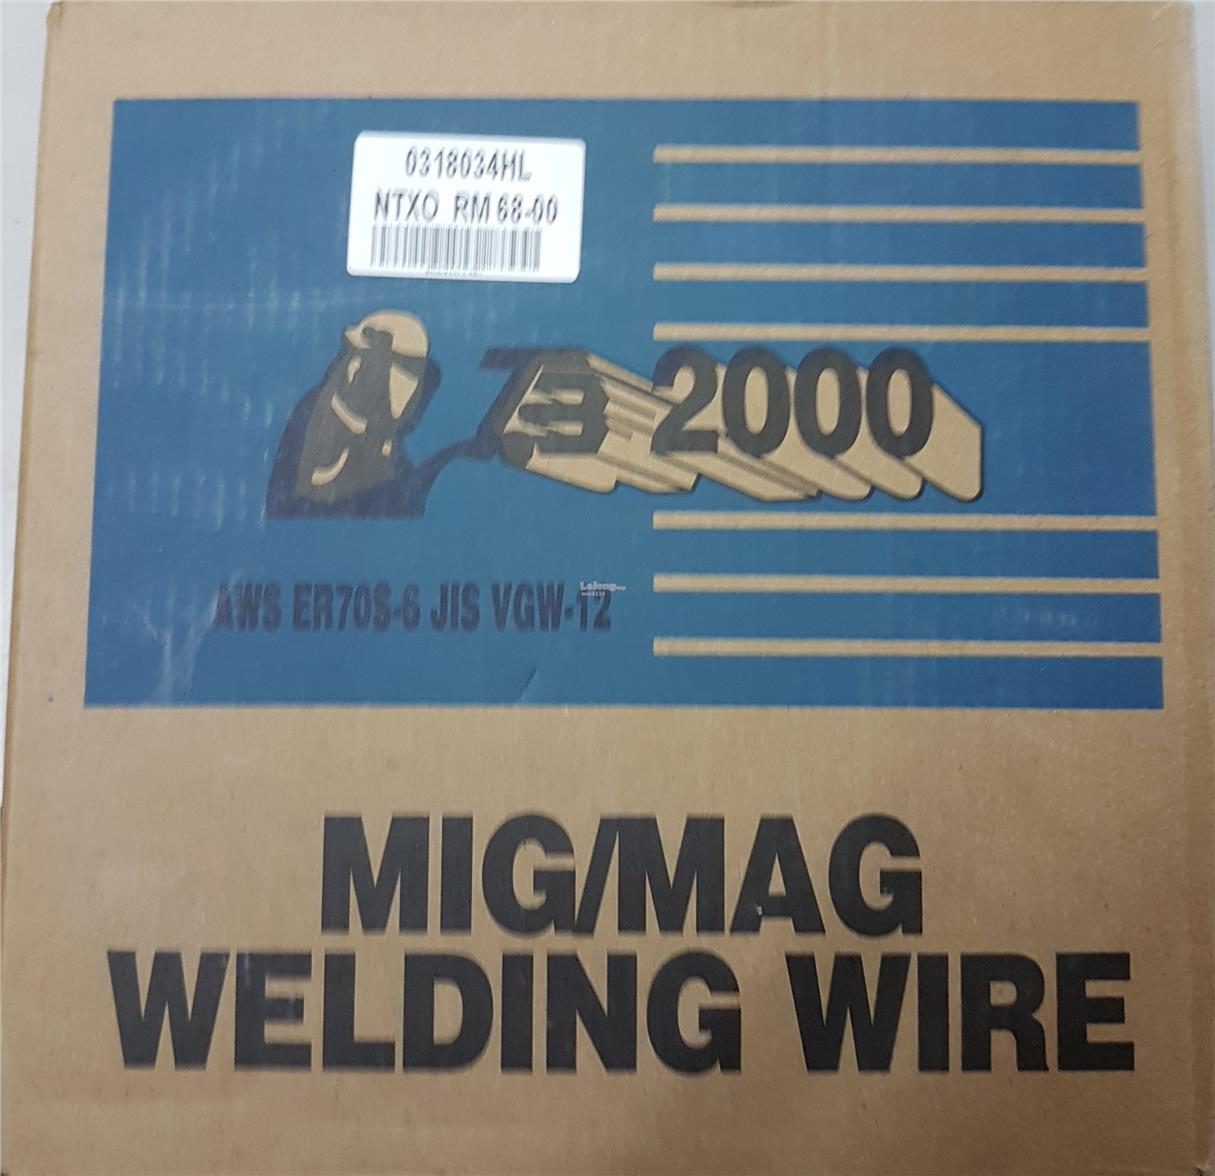 mig/mag welding wire (end 4/2/2019 2:15 PM)